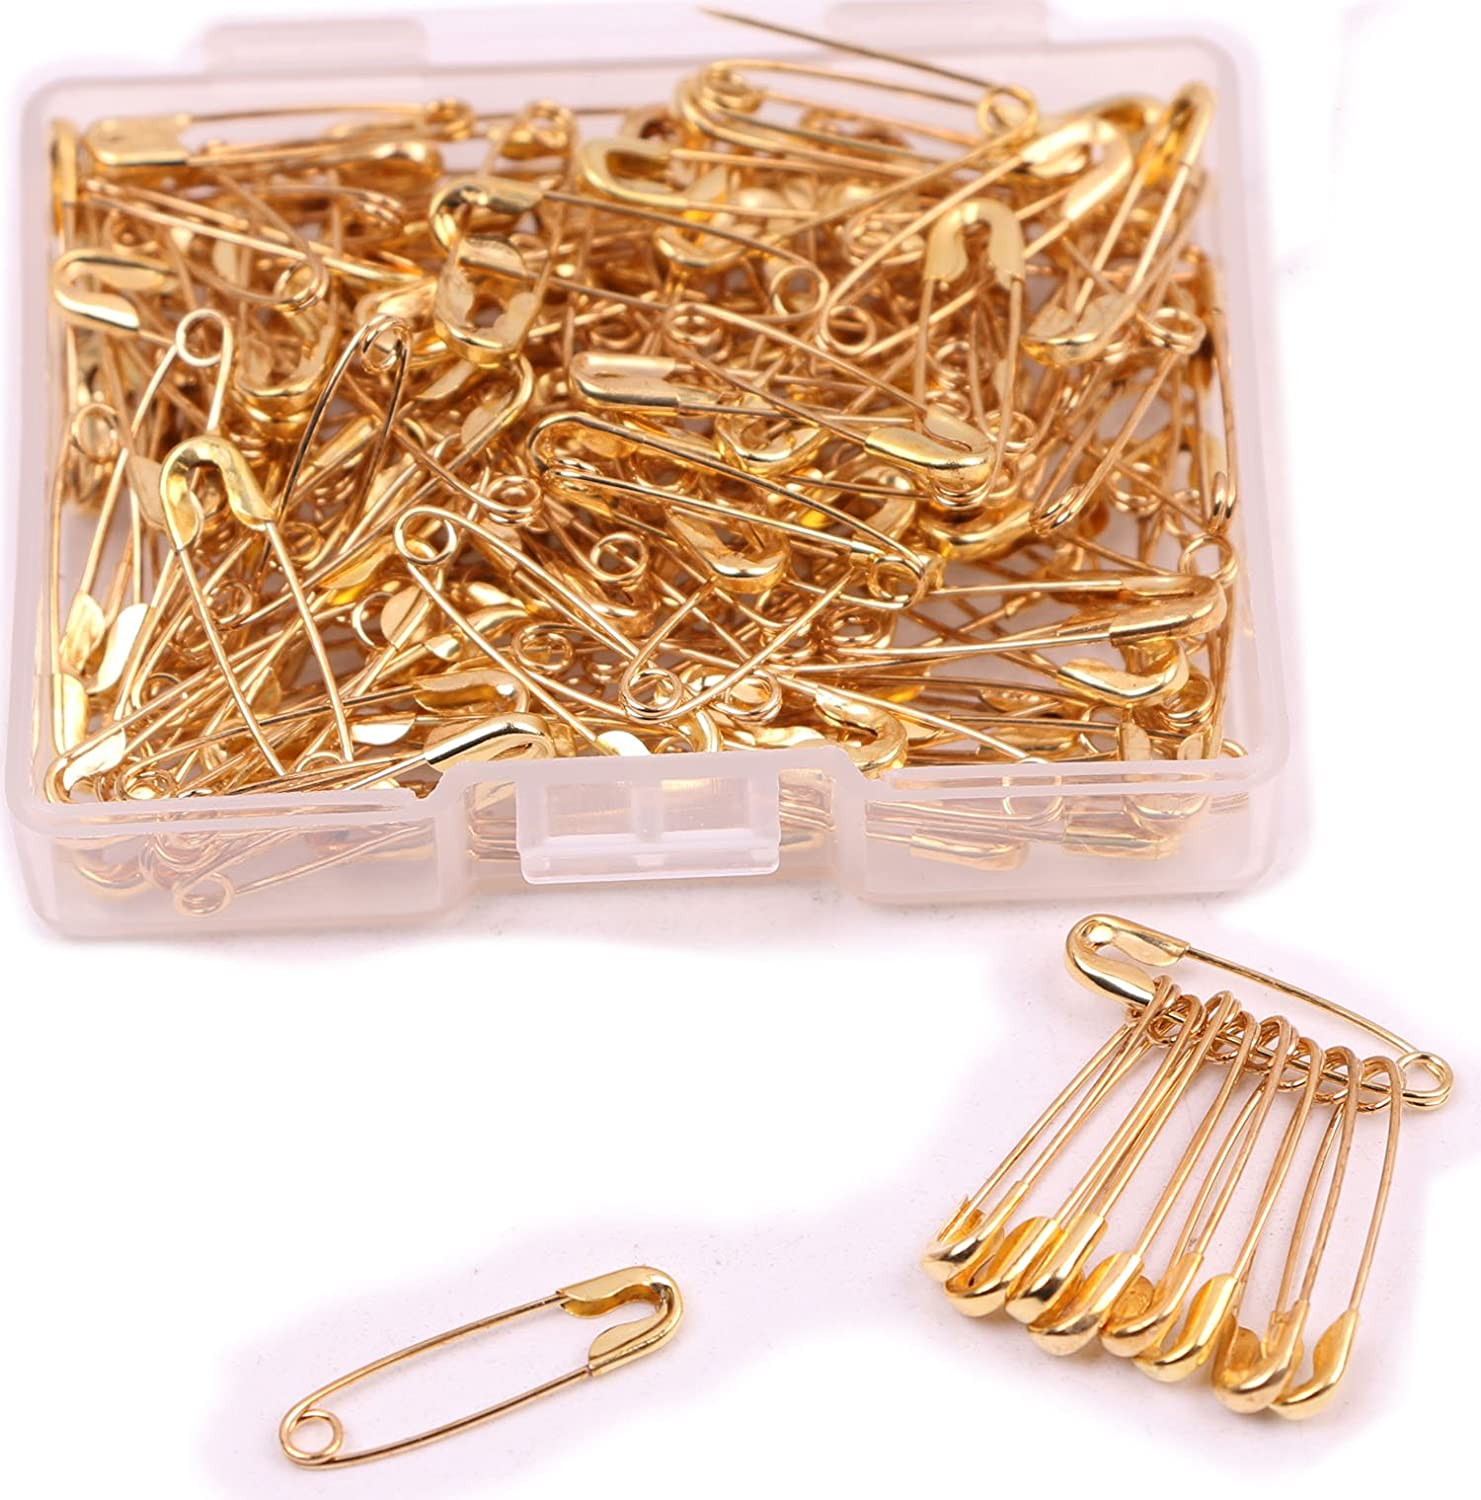 Shapenty Mini Metal Clothing Accessories Trimming Fastening Clip Button Tool Tiny Sewing Craft Safety Pins, 18x5mm, 160PCS (Gold) 4337010271